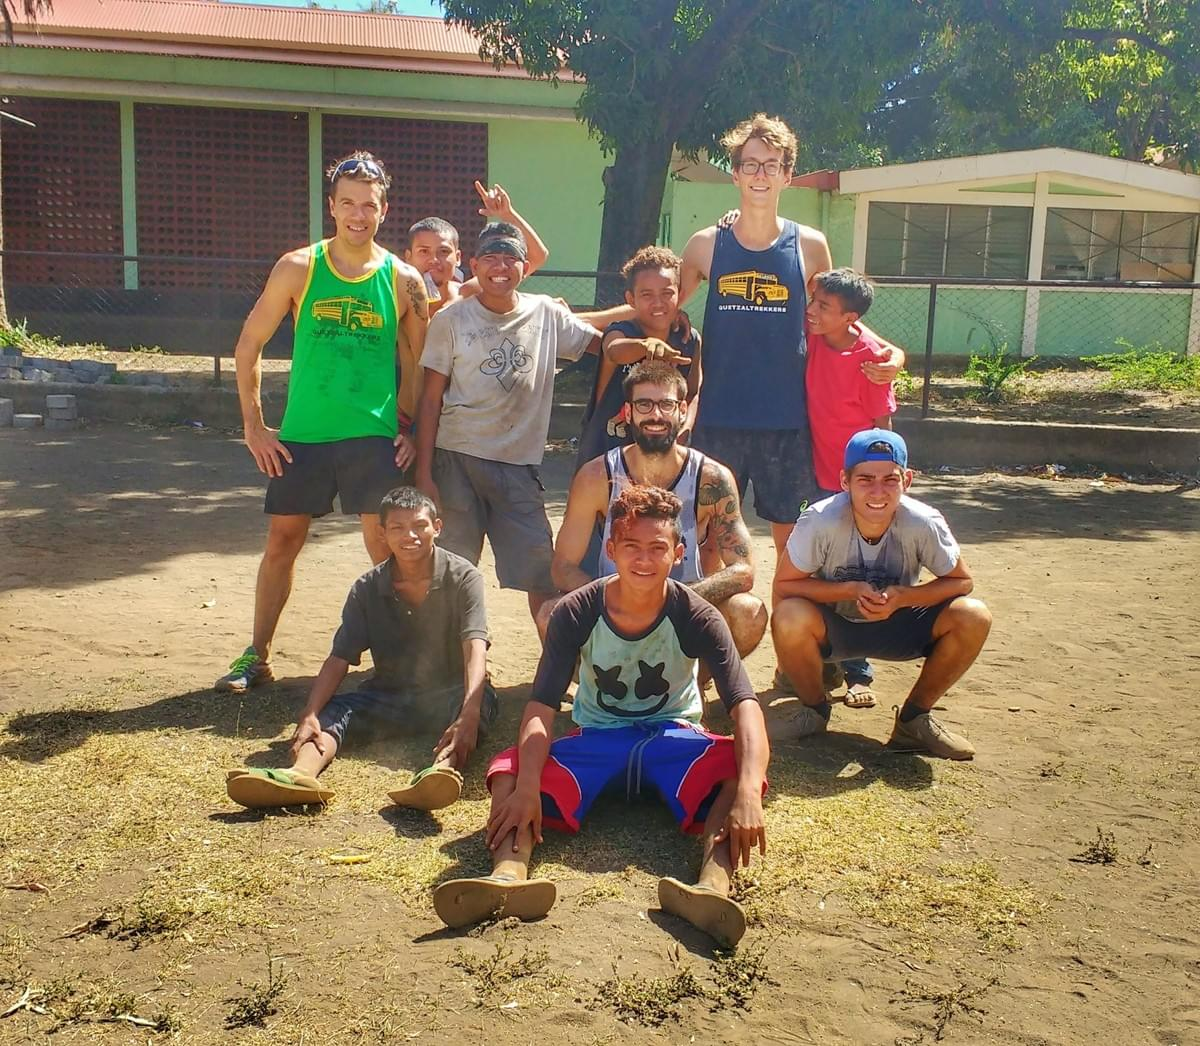 Group photo at a Quetzaltrekkers sports session in León, Nicaragua